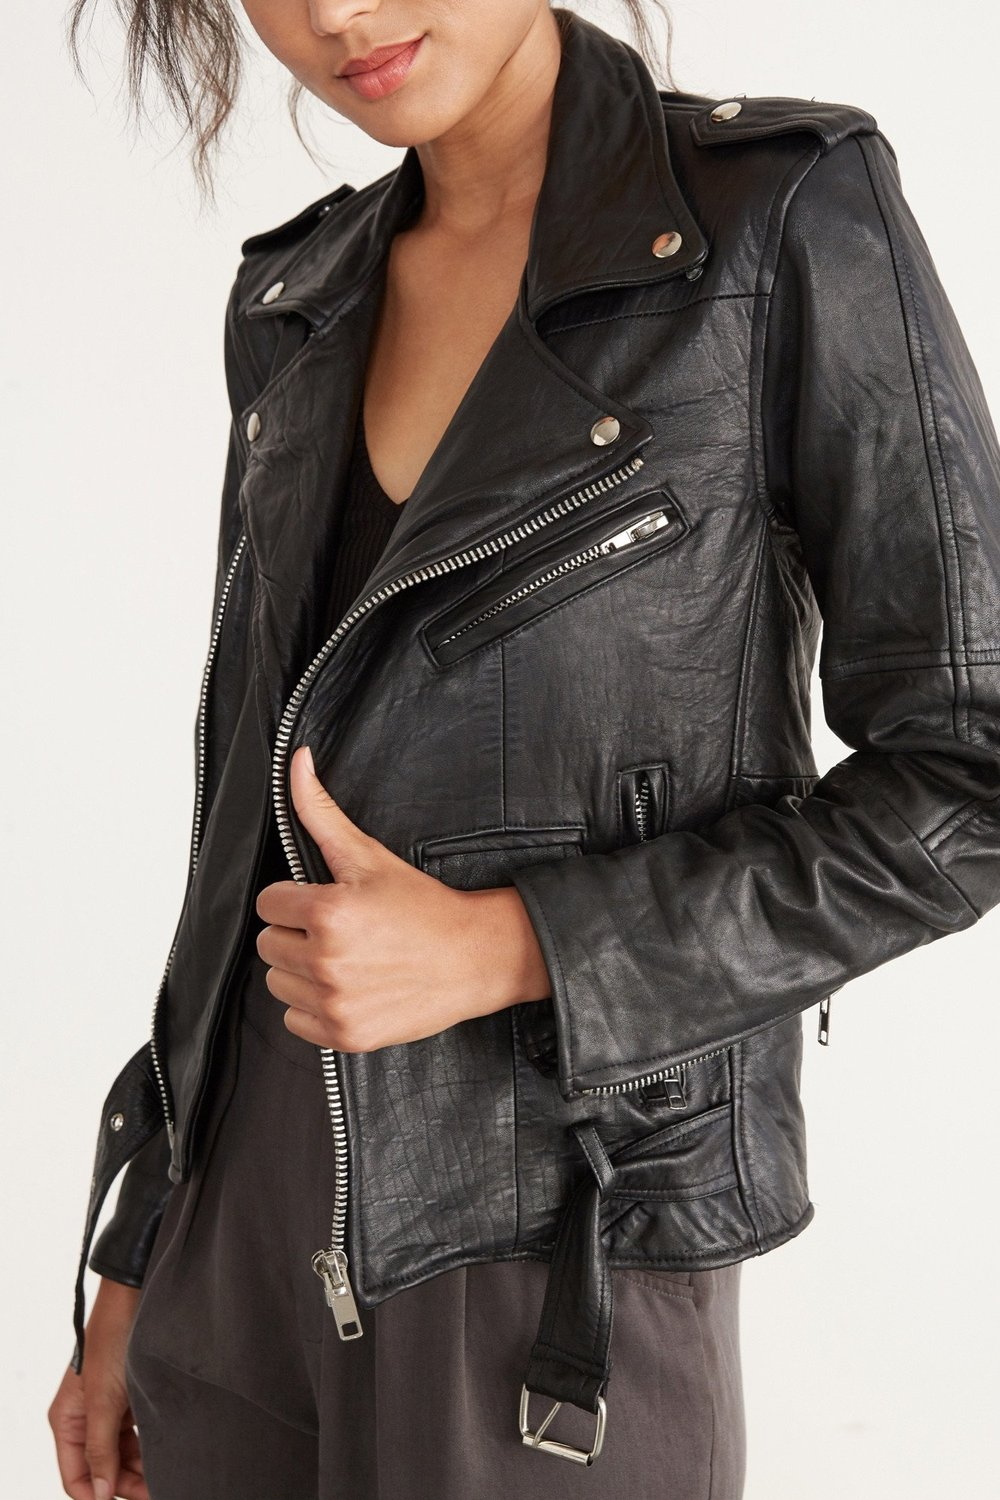 Deadwood classic biker jacket via Amour Vert